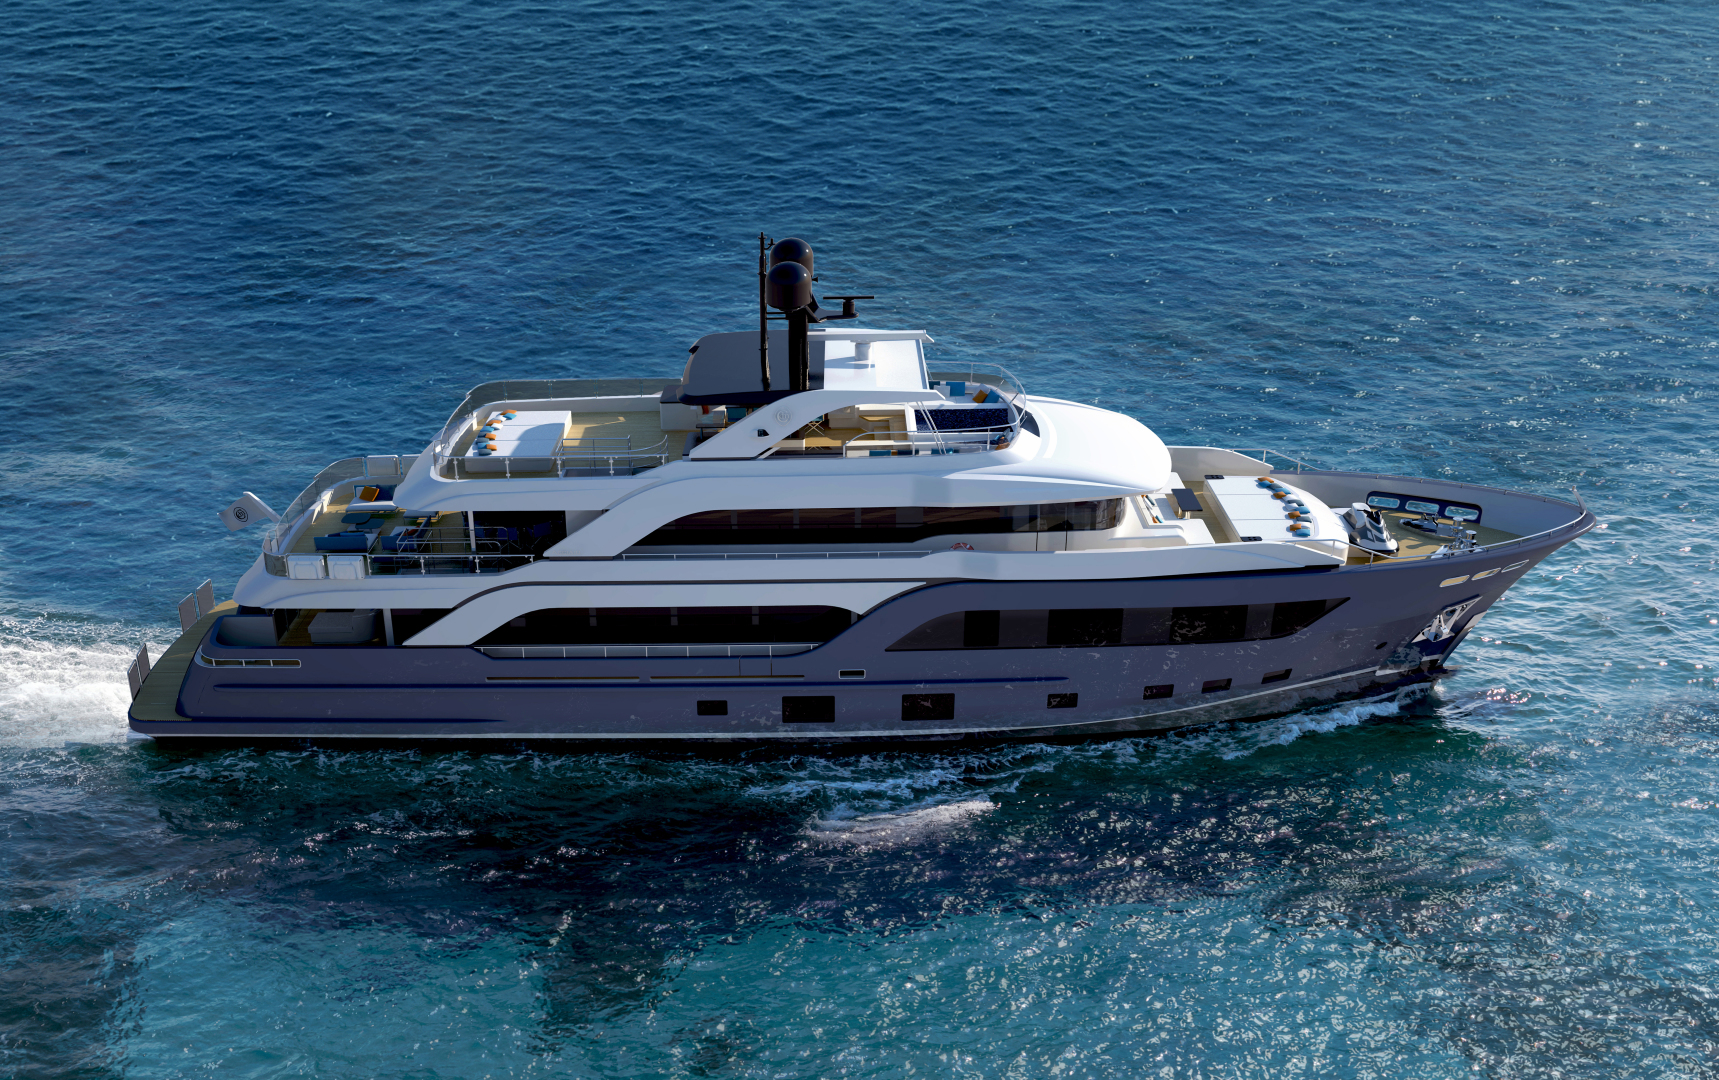 2019 Cantiere Delle Marche 122ft 2019 ACCIAIO (nearing completion) Yacht  for Sale